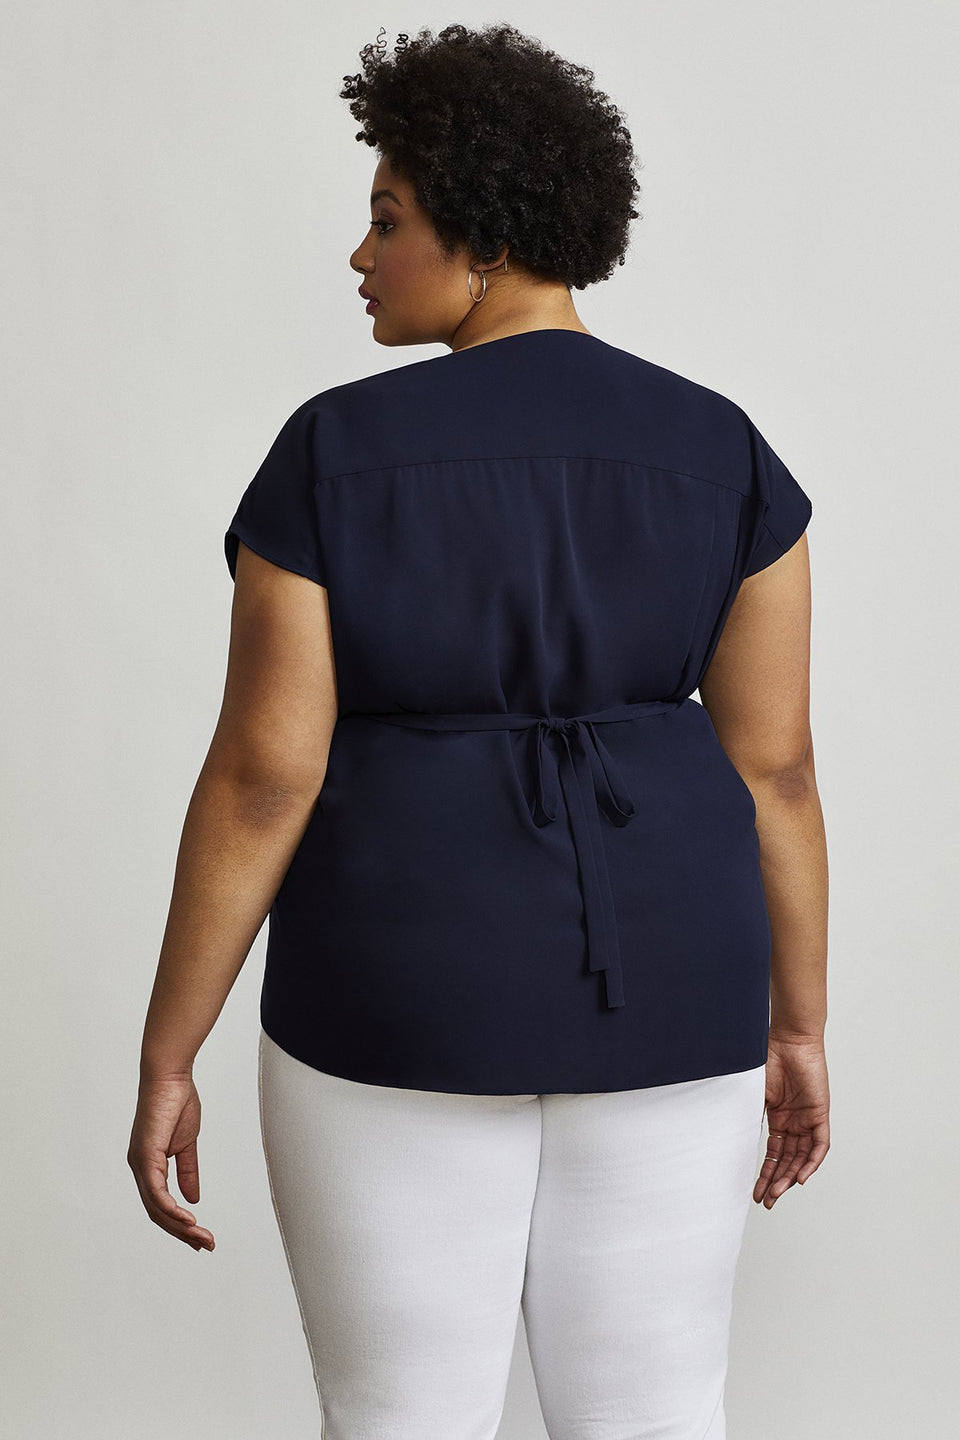 Hudson Blouse in French Navy